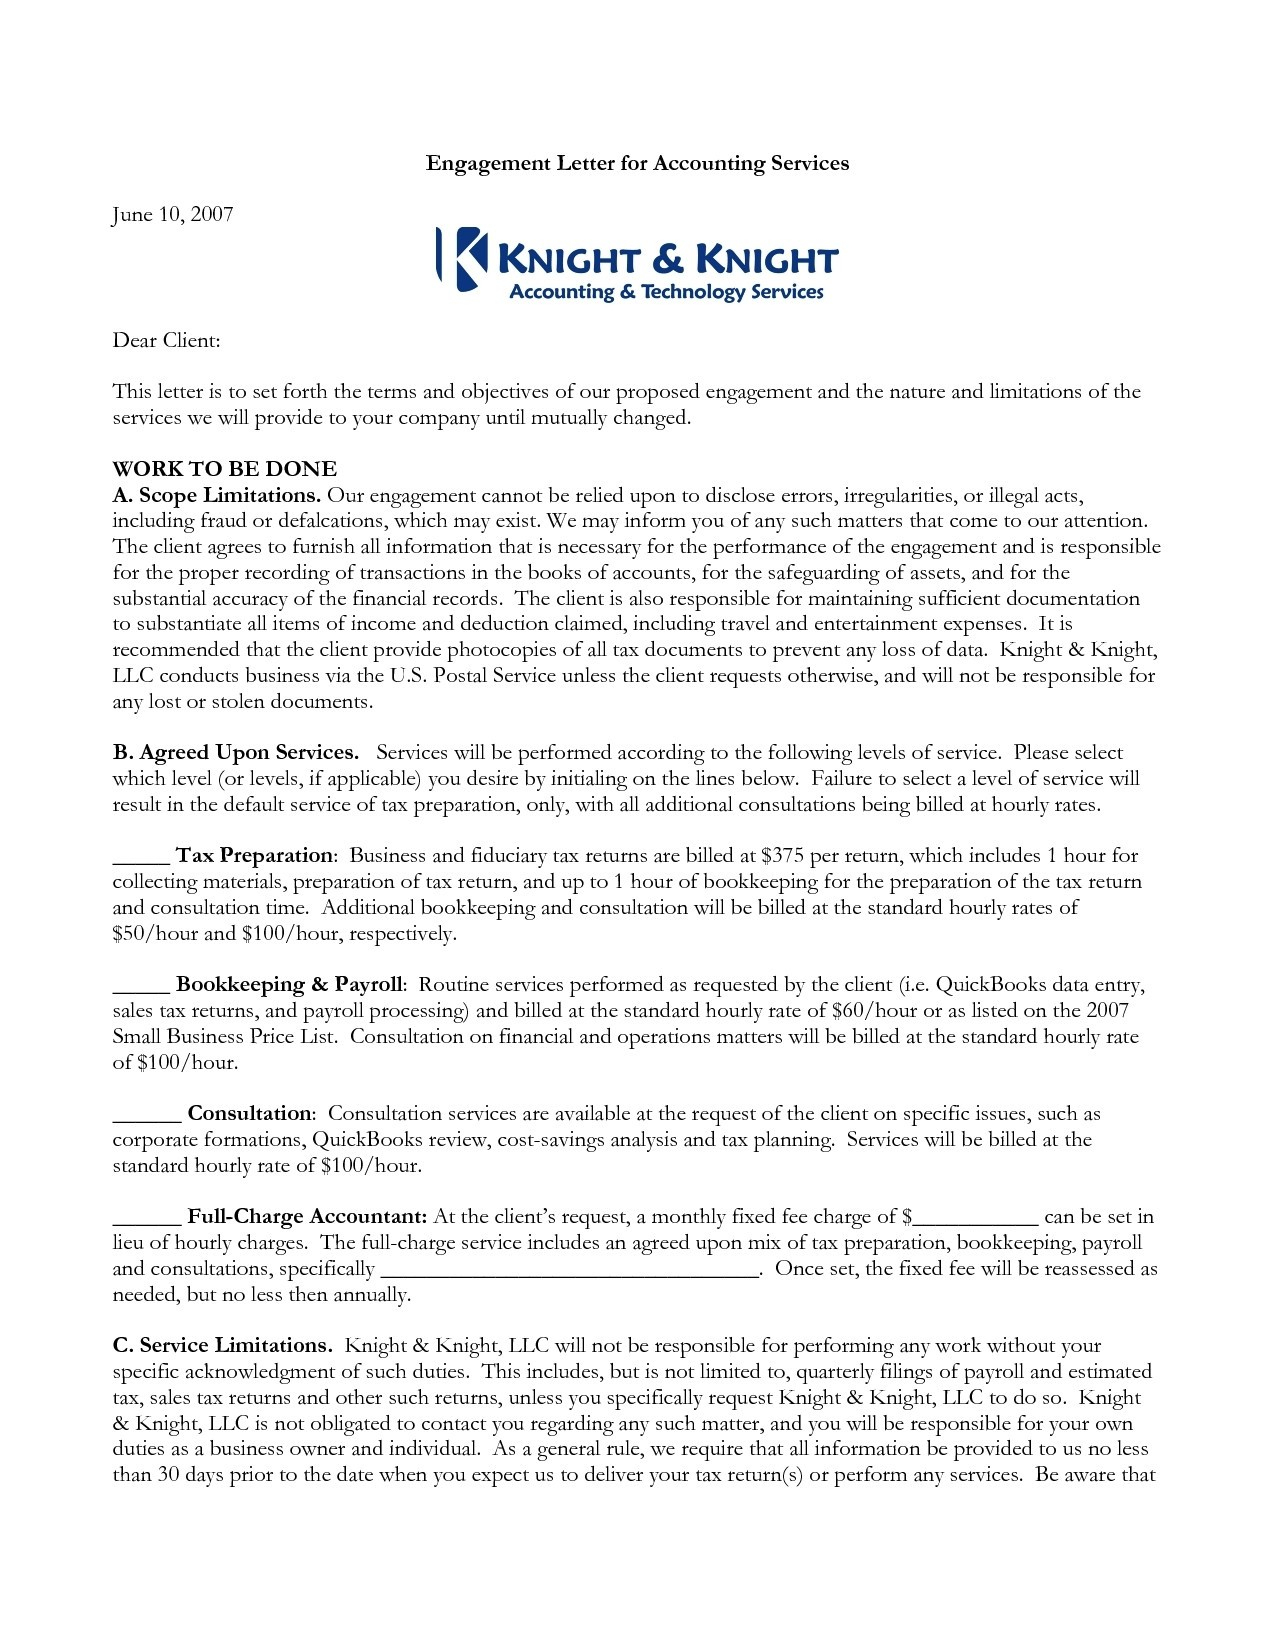 Tax Engagement Letter Template - Cpa Engagement Letter Template